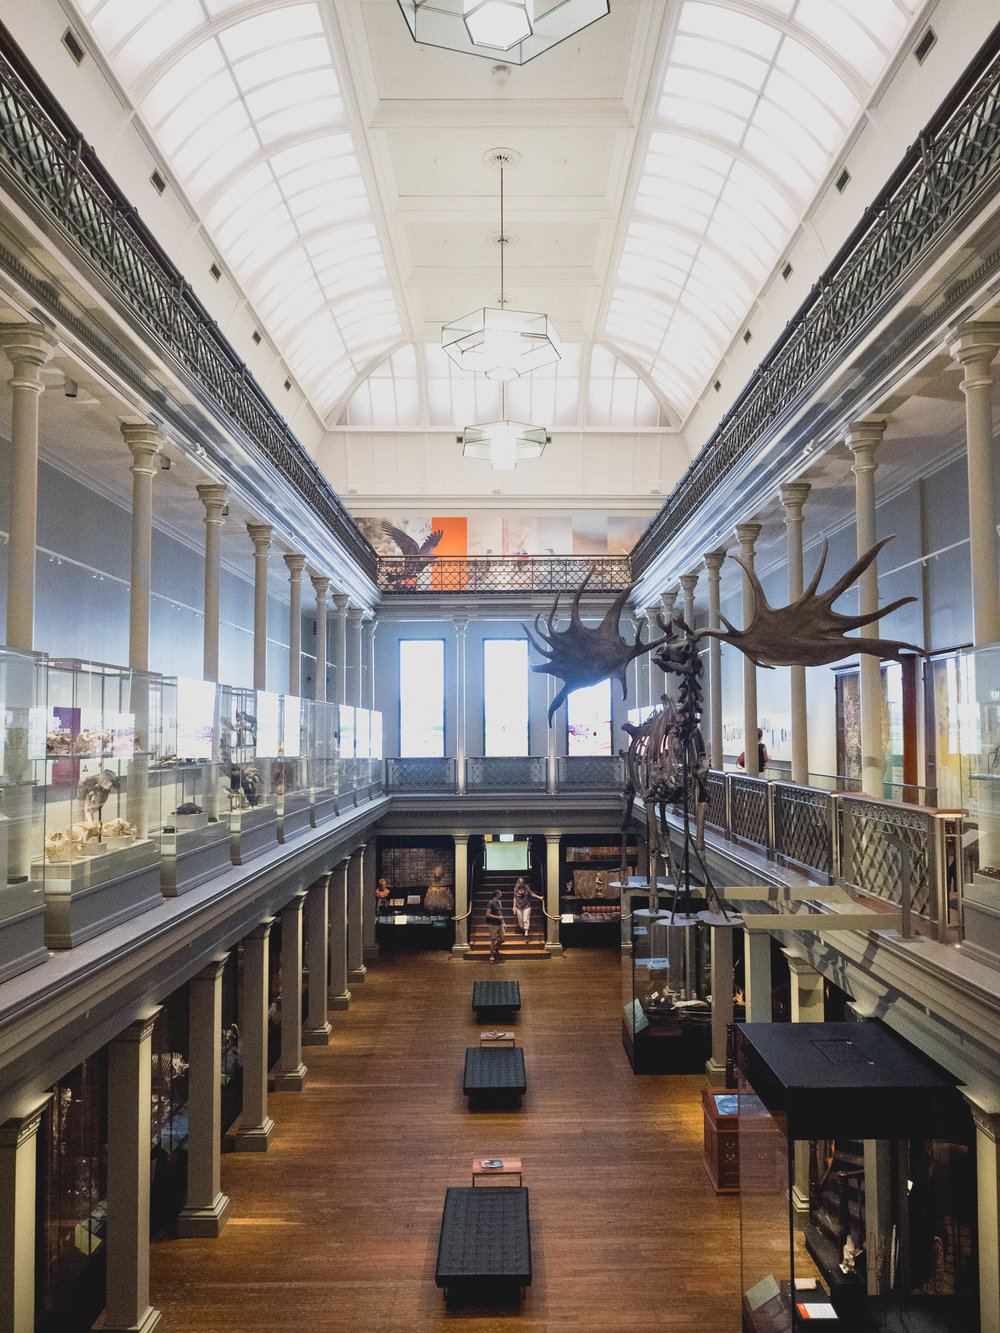 200 treasures of the australian museum.